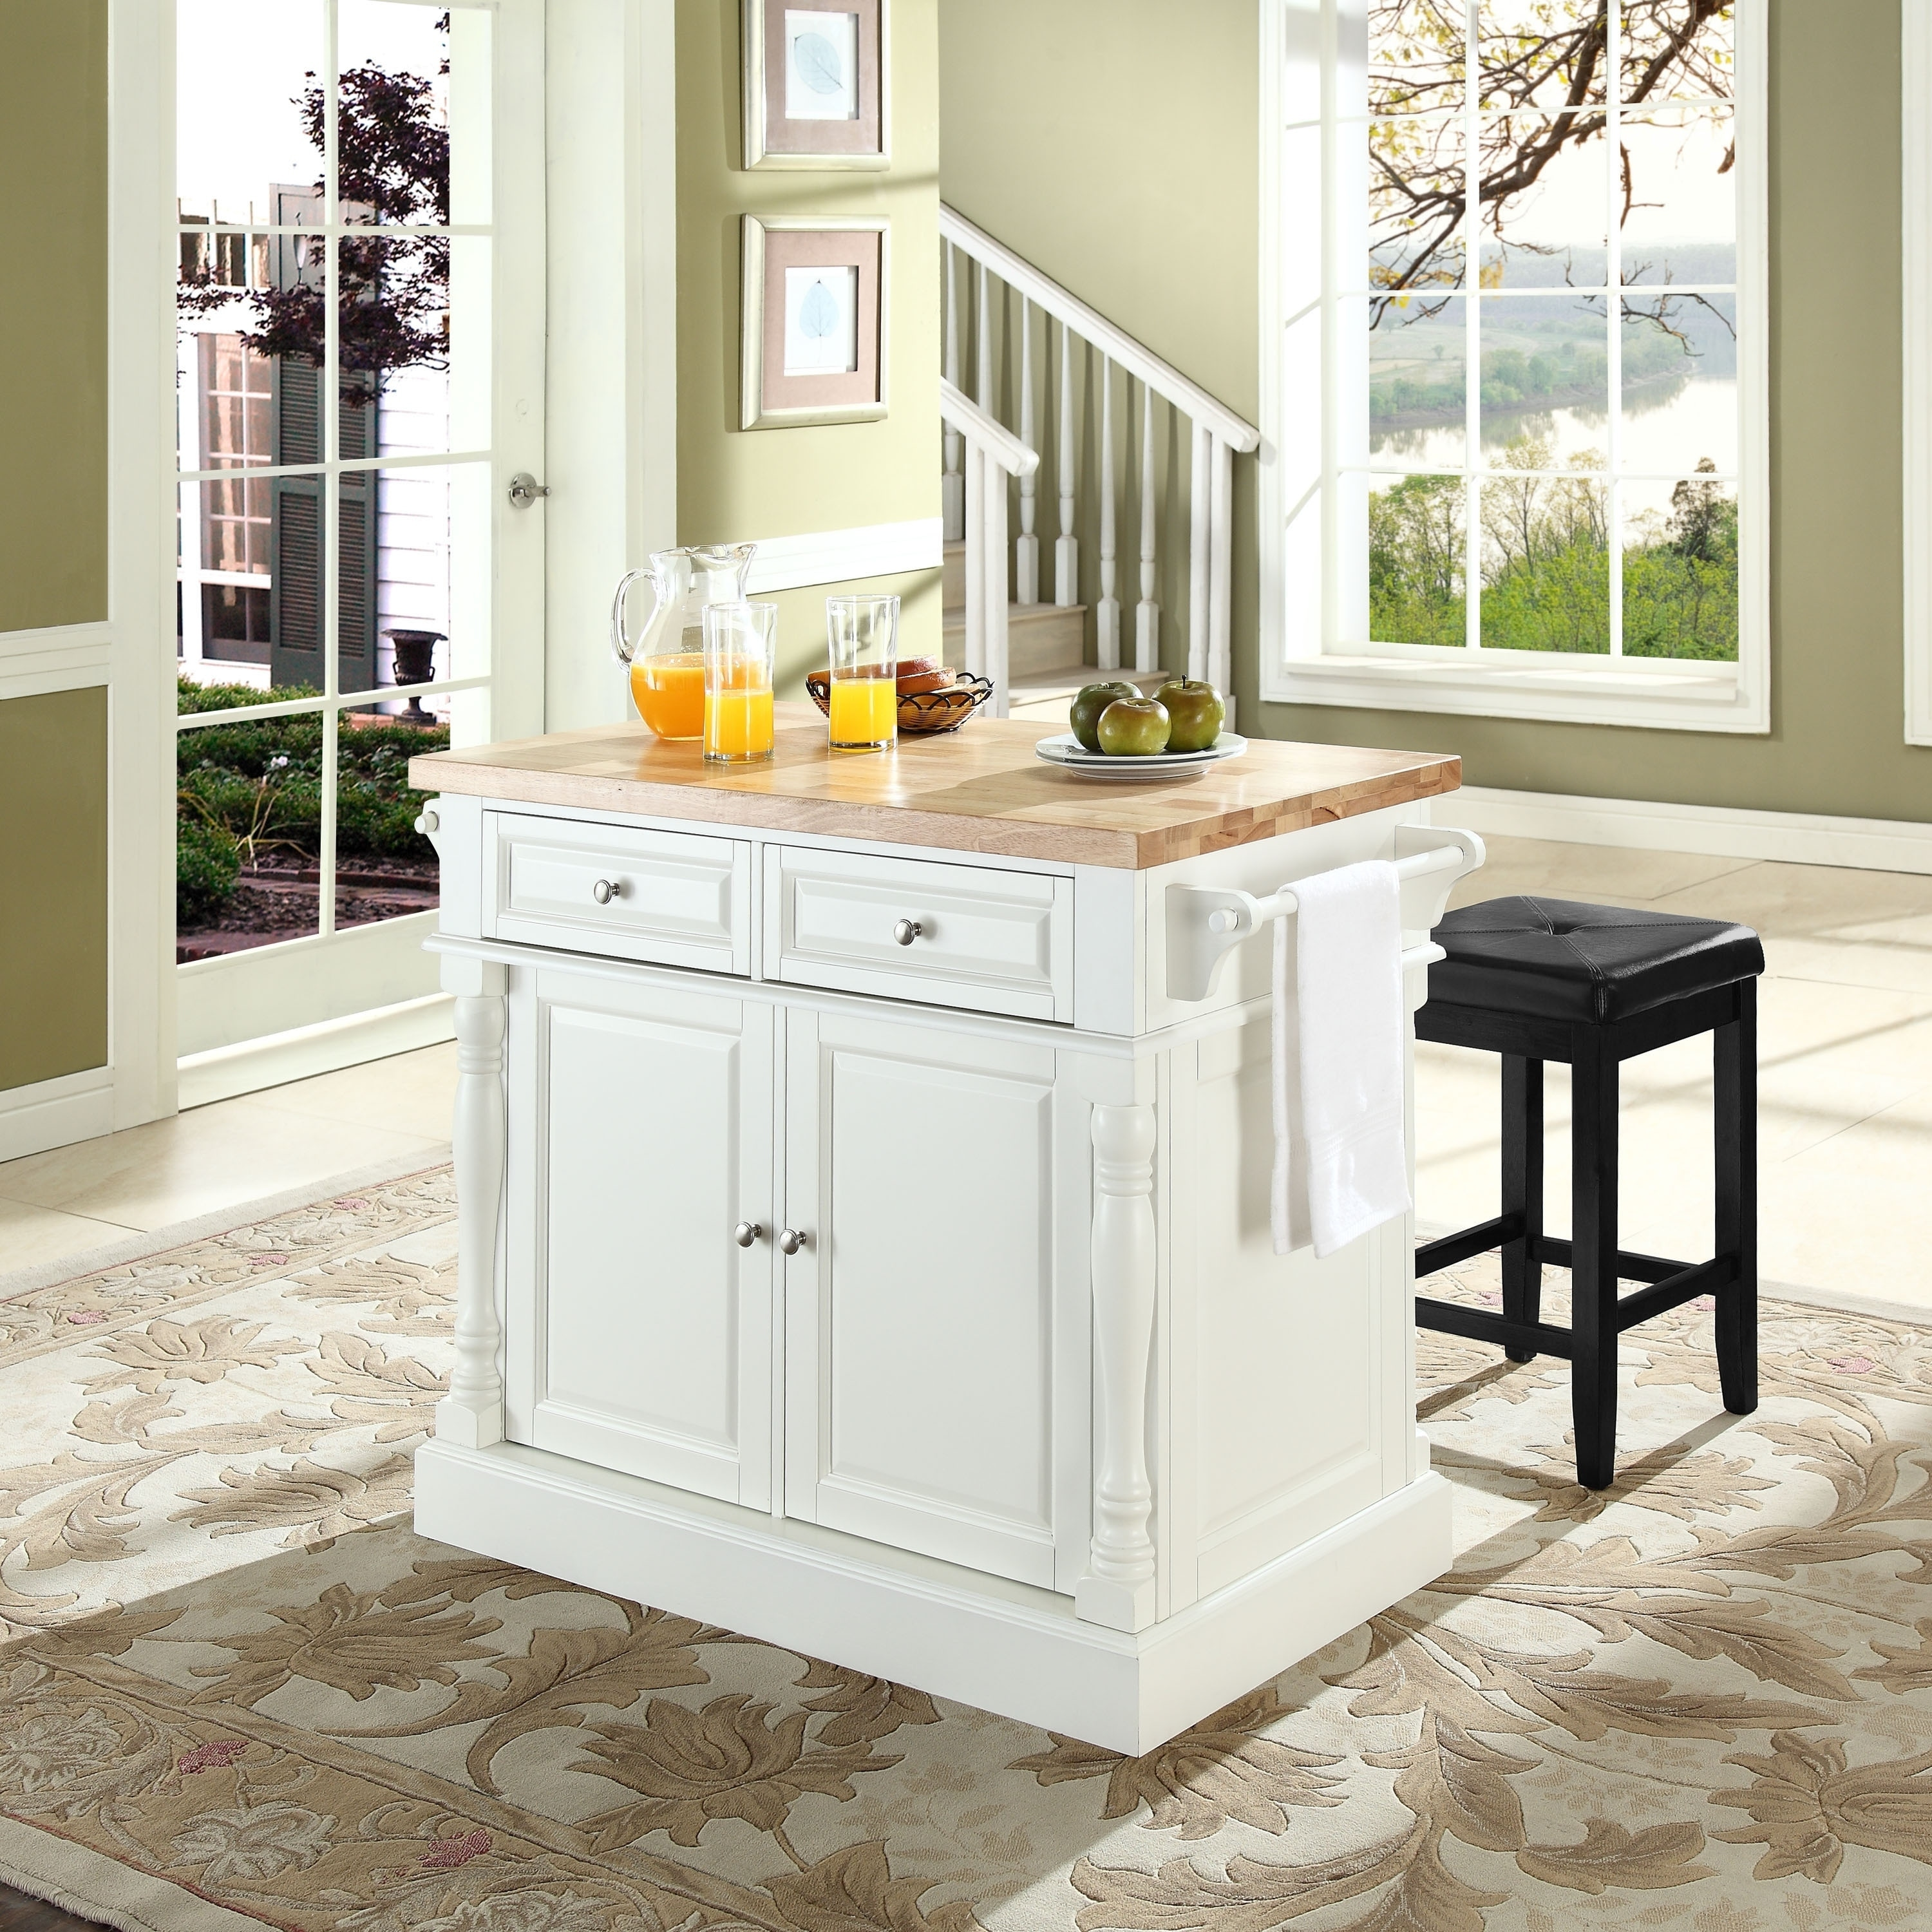 Stools Kitchen Islands Oxford Butcher Block Top Kitchen Island In White Finish With Stools